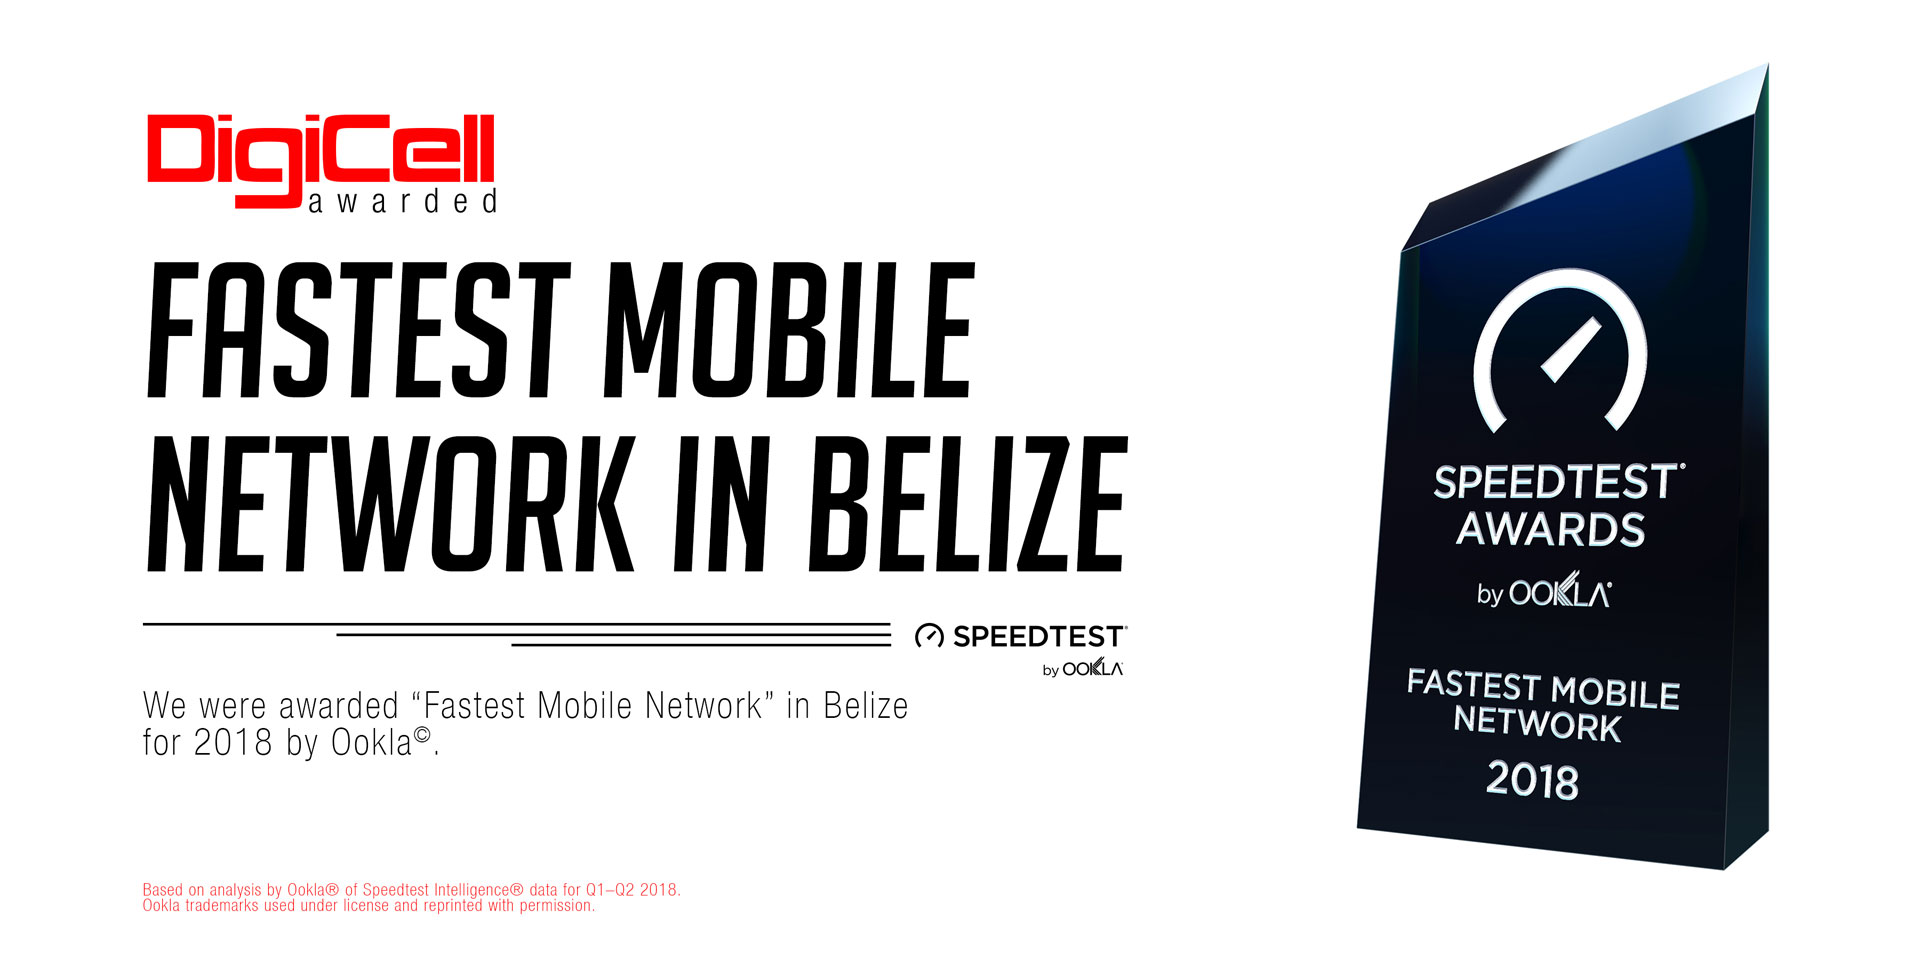 Fastest Mobile Network in Belize